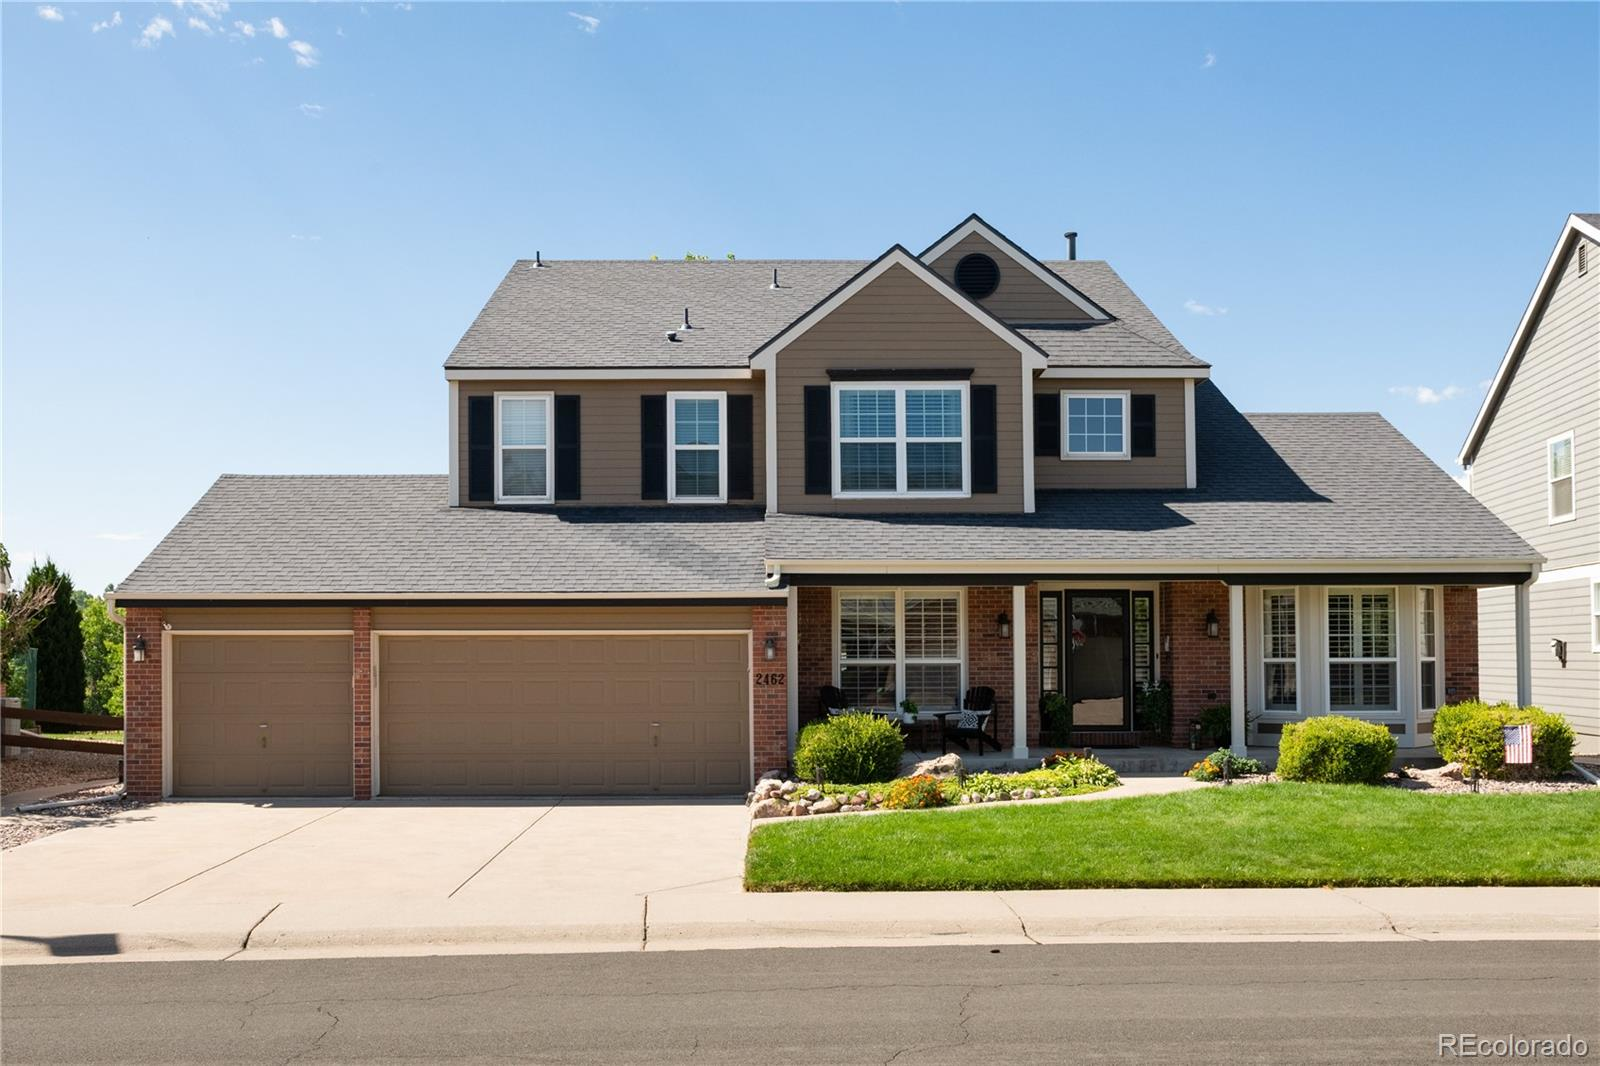 2462 Cactus Bluff Place, Highlands Ranch, CO 80129